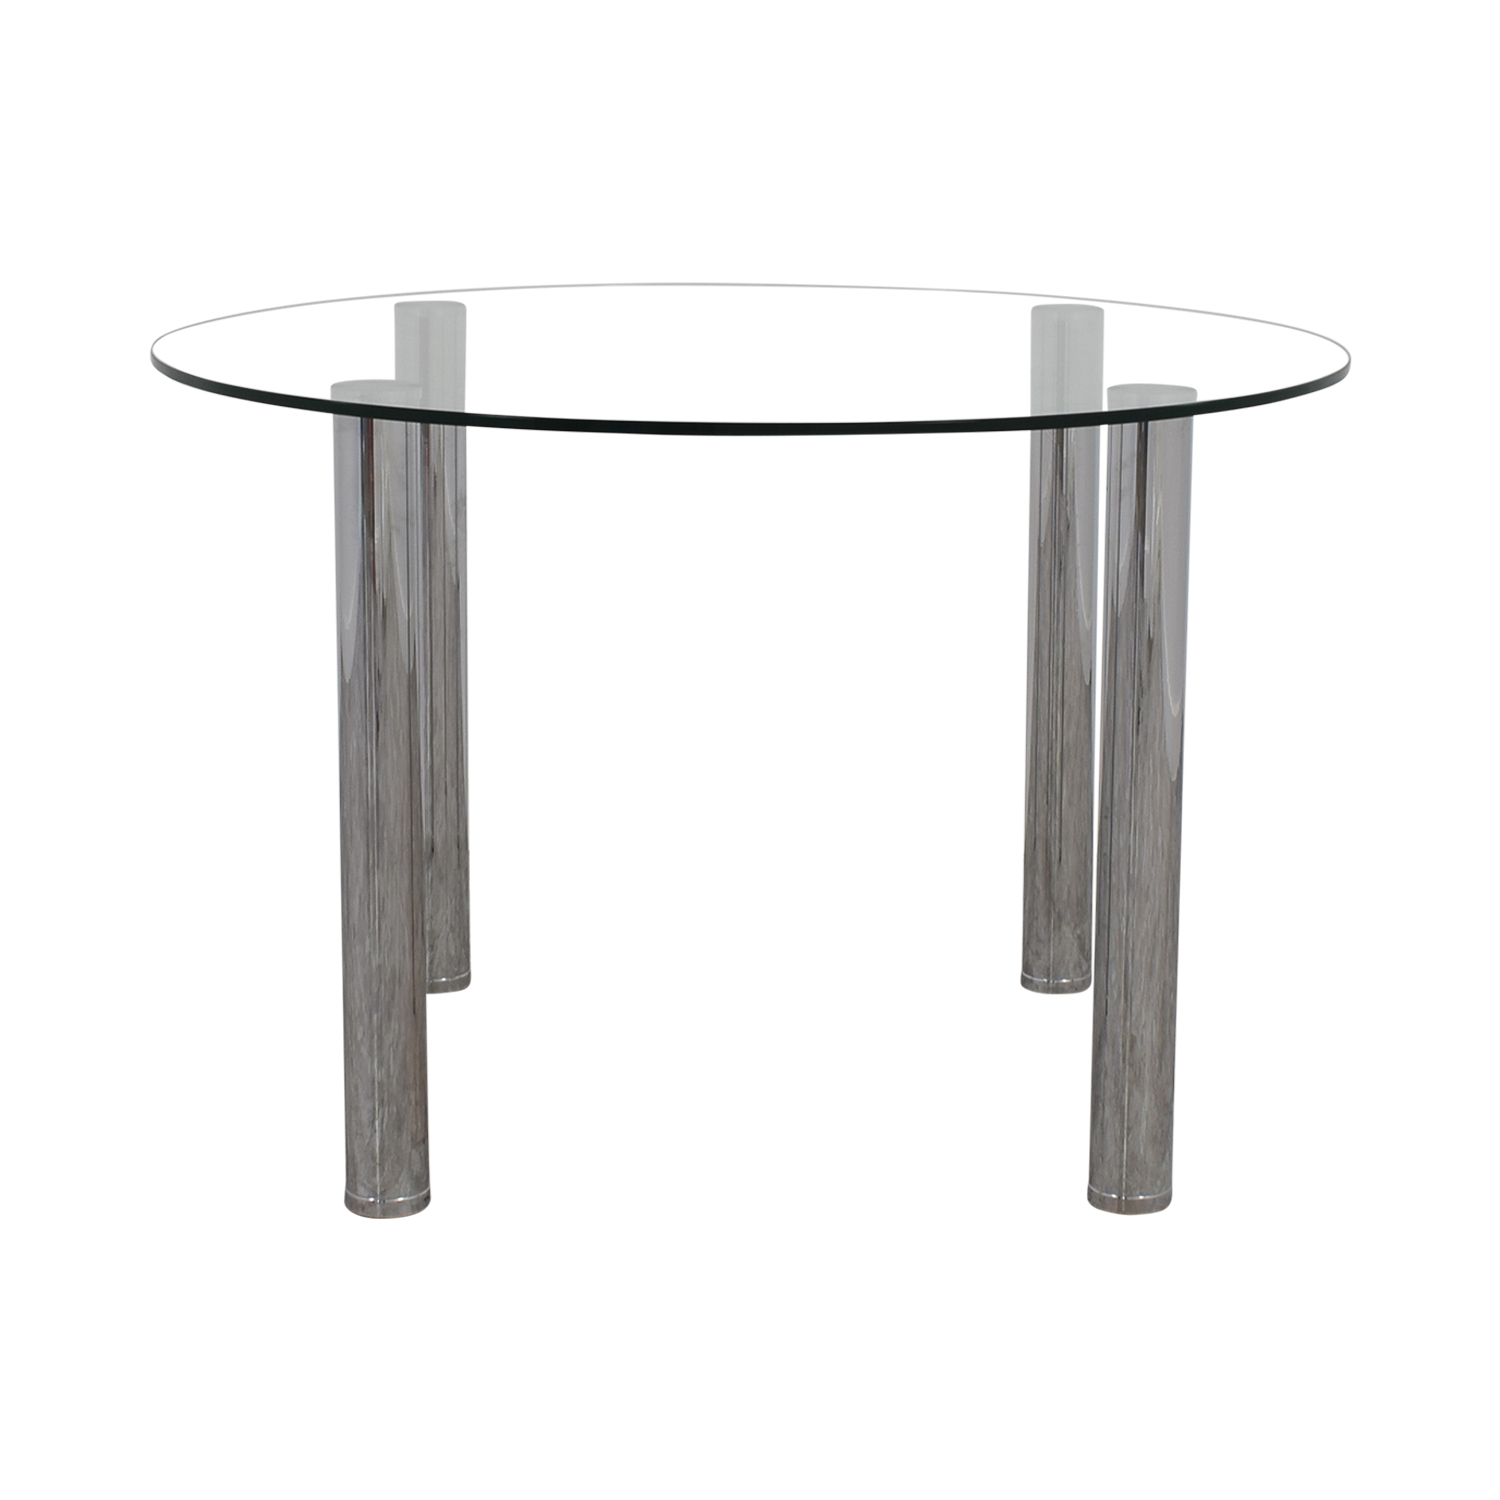 Round Glass and Chrome Table price